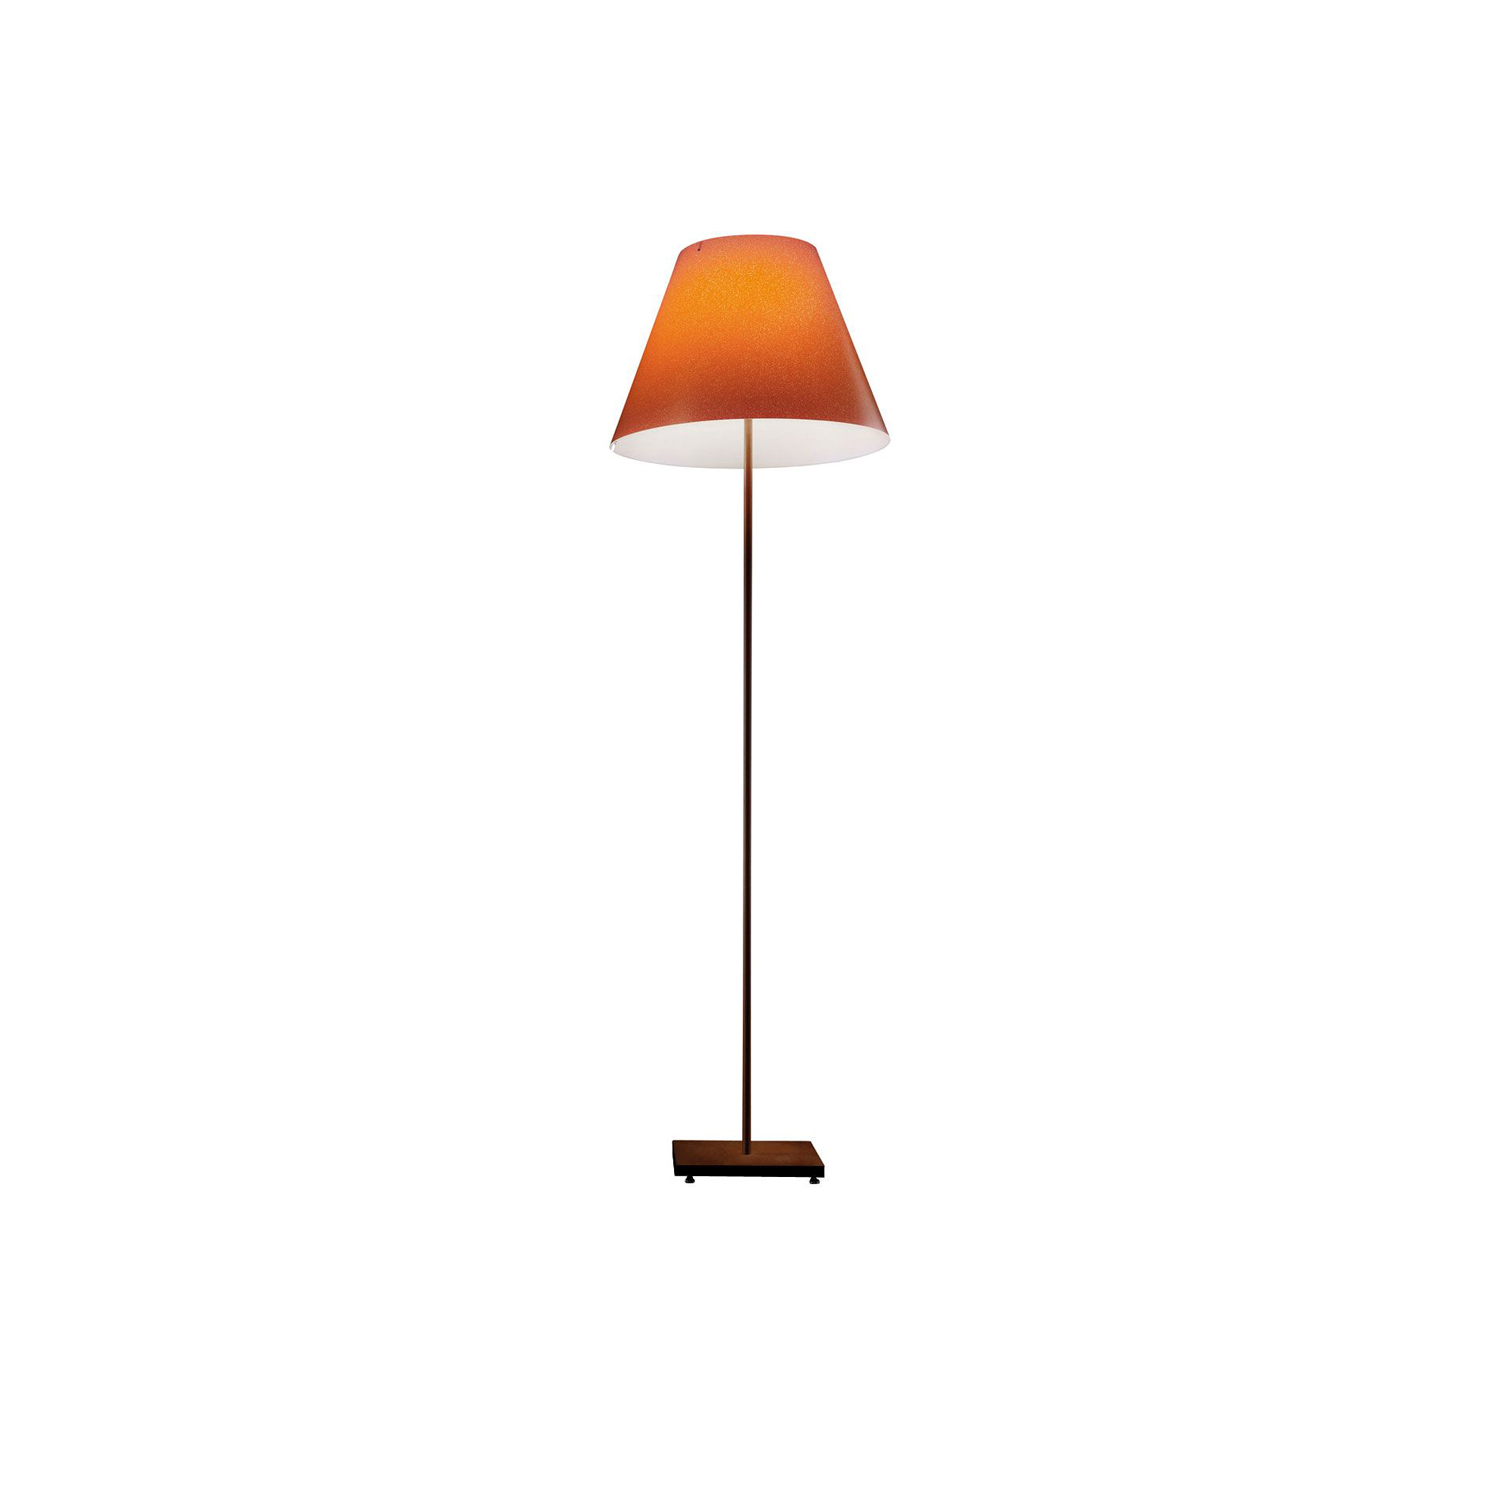 Grande Costanza Open Air Outdoor Lamp - The outdoor version is perfect for terraces and gardens, to light spaces with elegance and efficiency. The shade comes in the colors ivory, rust or green. Stem in white, rust or aluminium.  Structure and shade comes in different finishes please enquire for more information  | Matter of Stuff